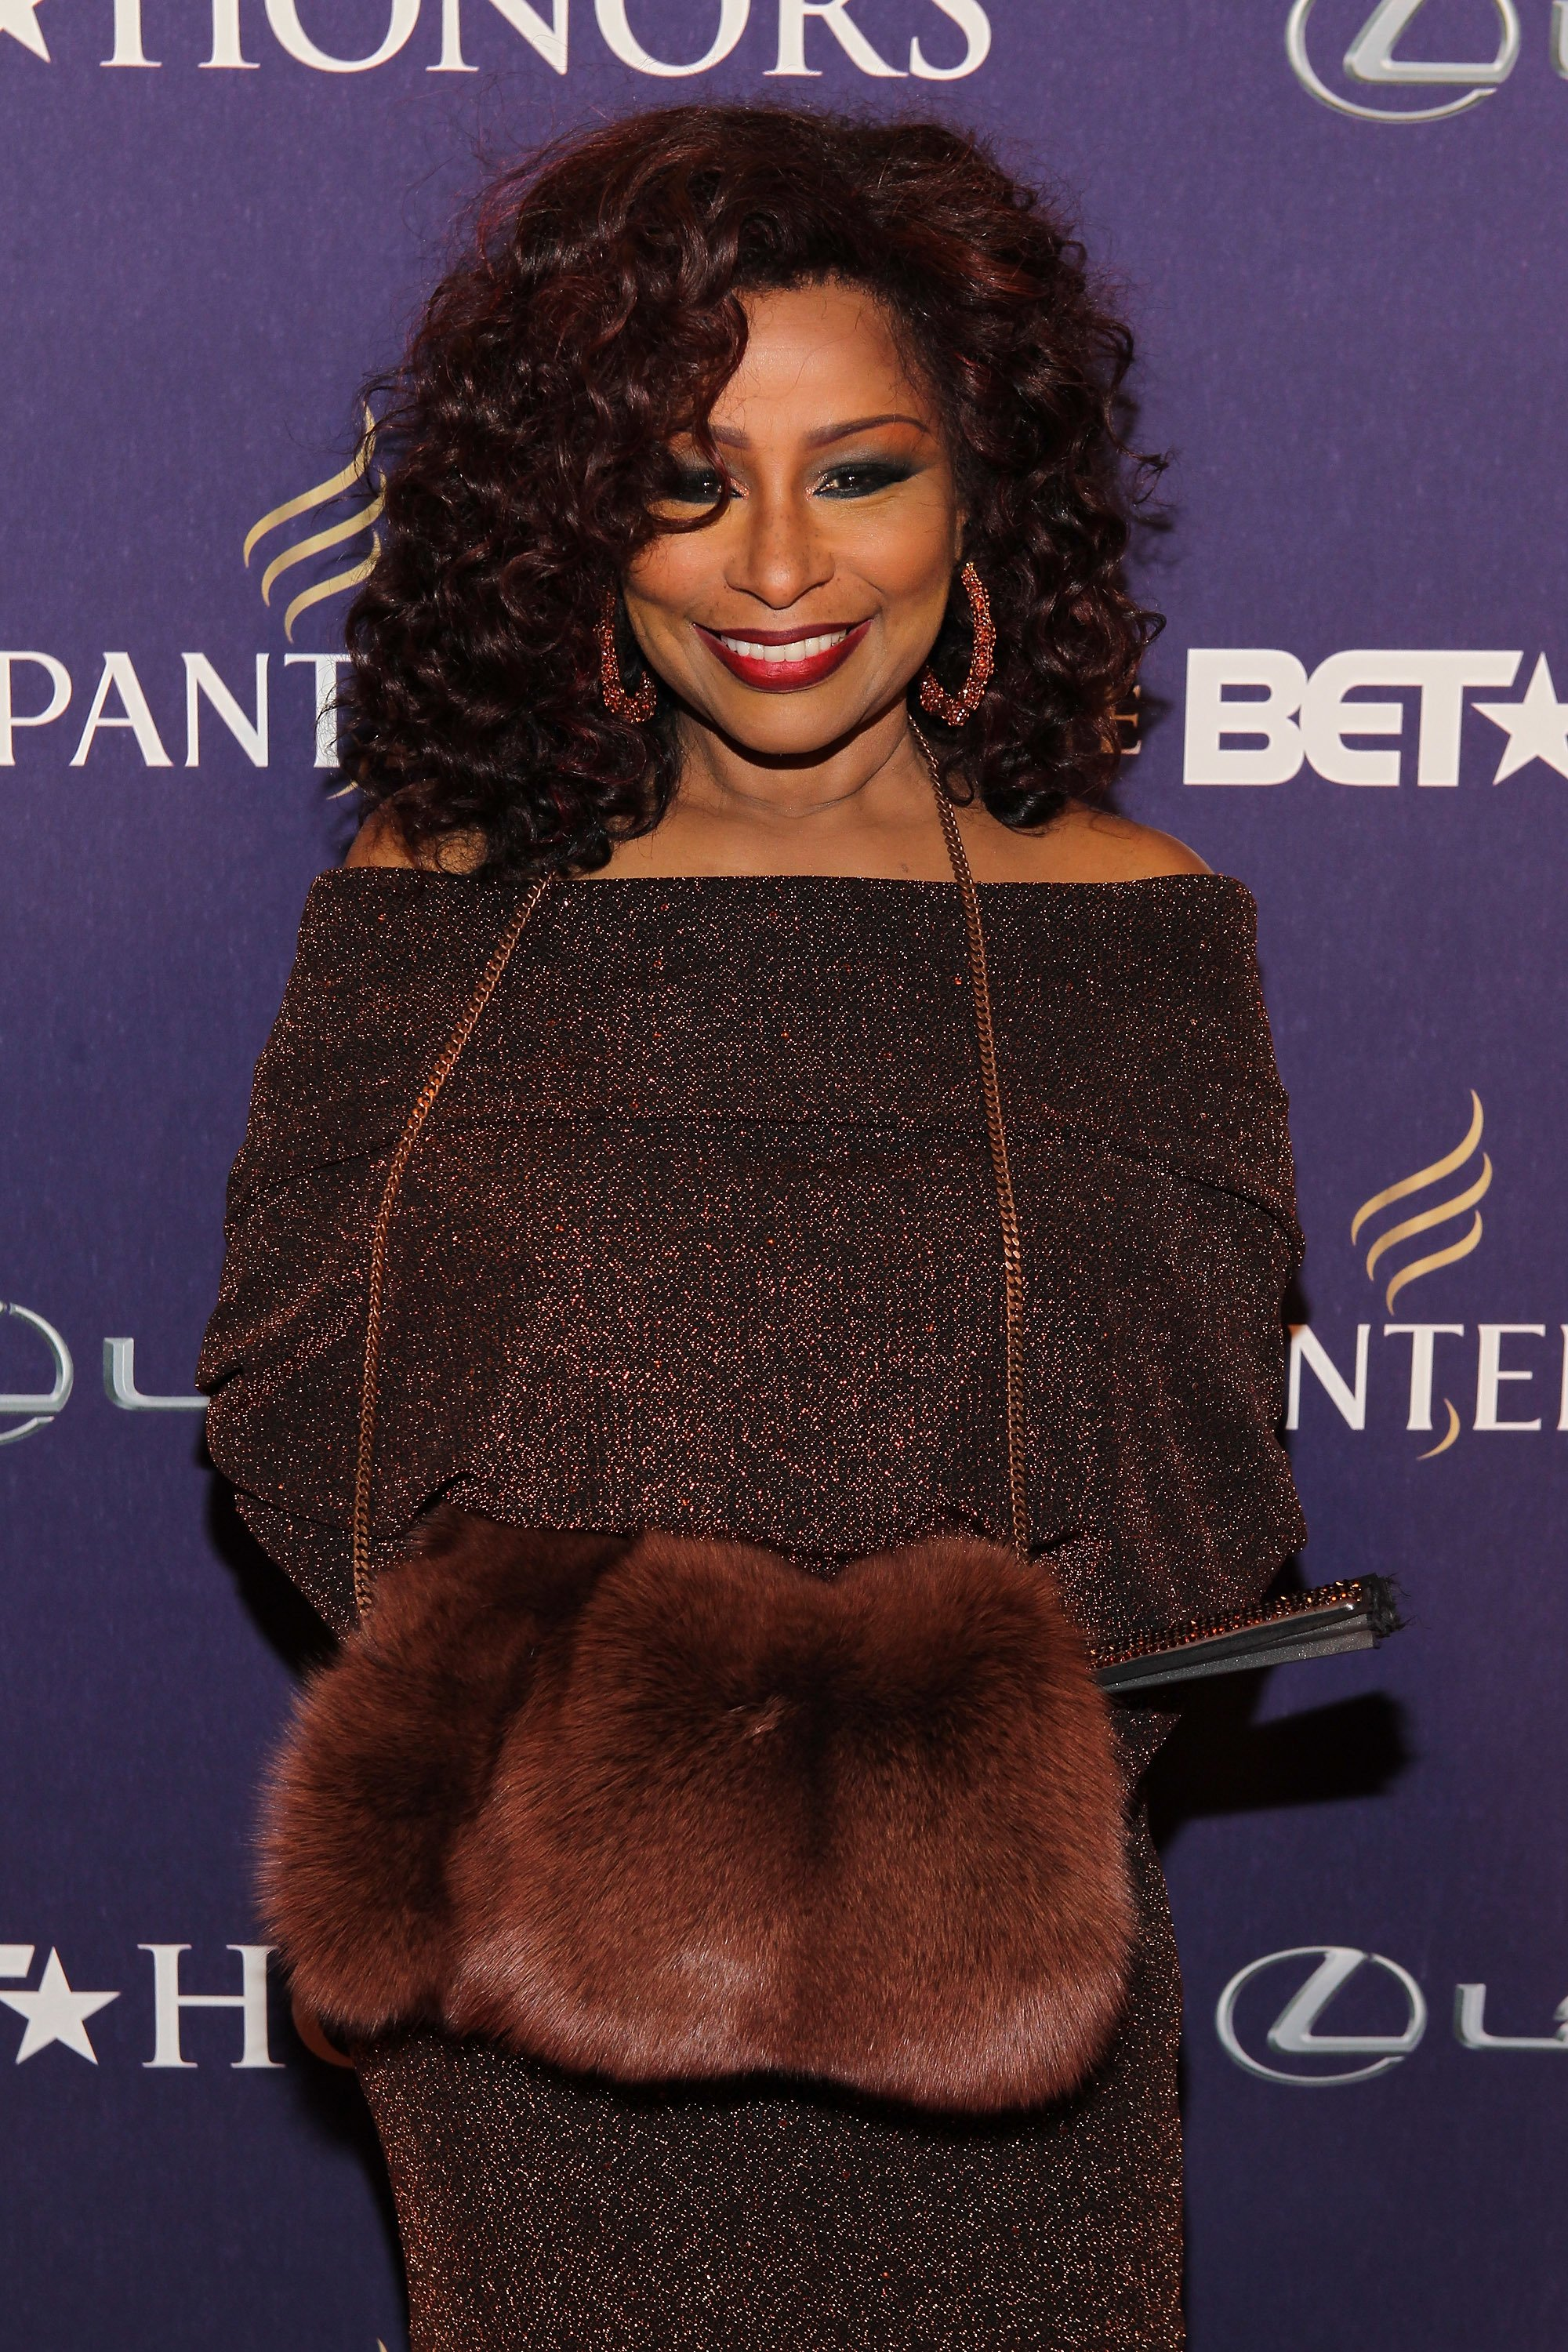 Chaka Khan at BET Honors 2013: Red Carpet Presented By Pantene in 2013 in Washington, DC. | Source: Getty Images